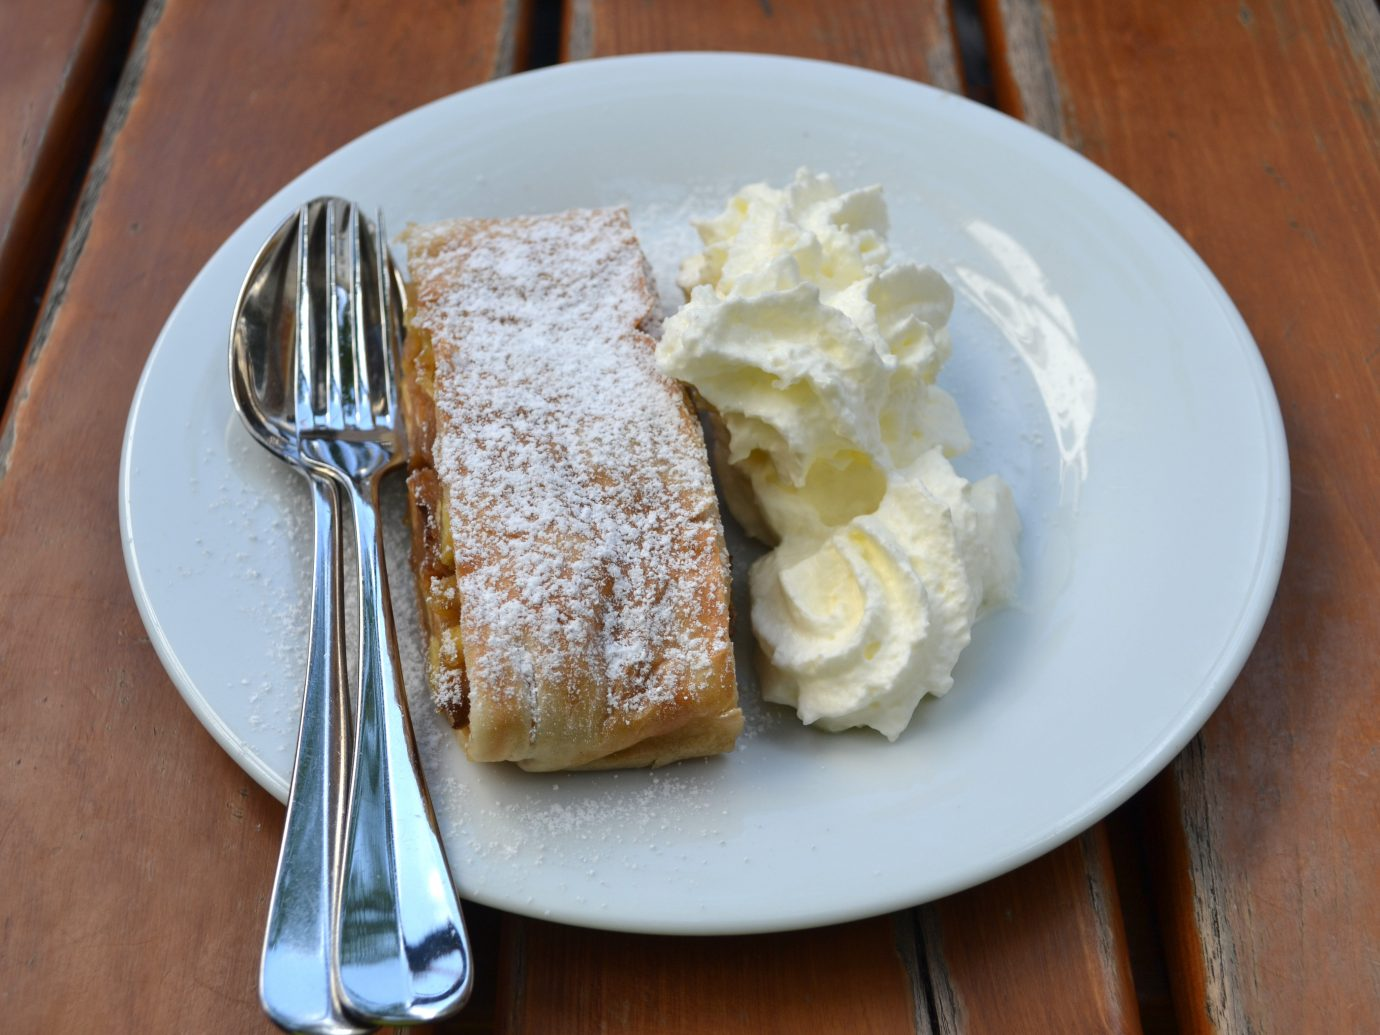 Apple Strudel at Café Savoy in Prague, Czech Republic